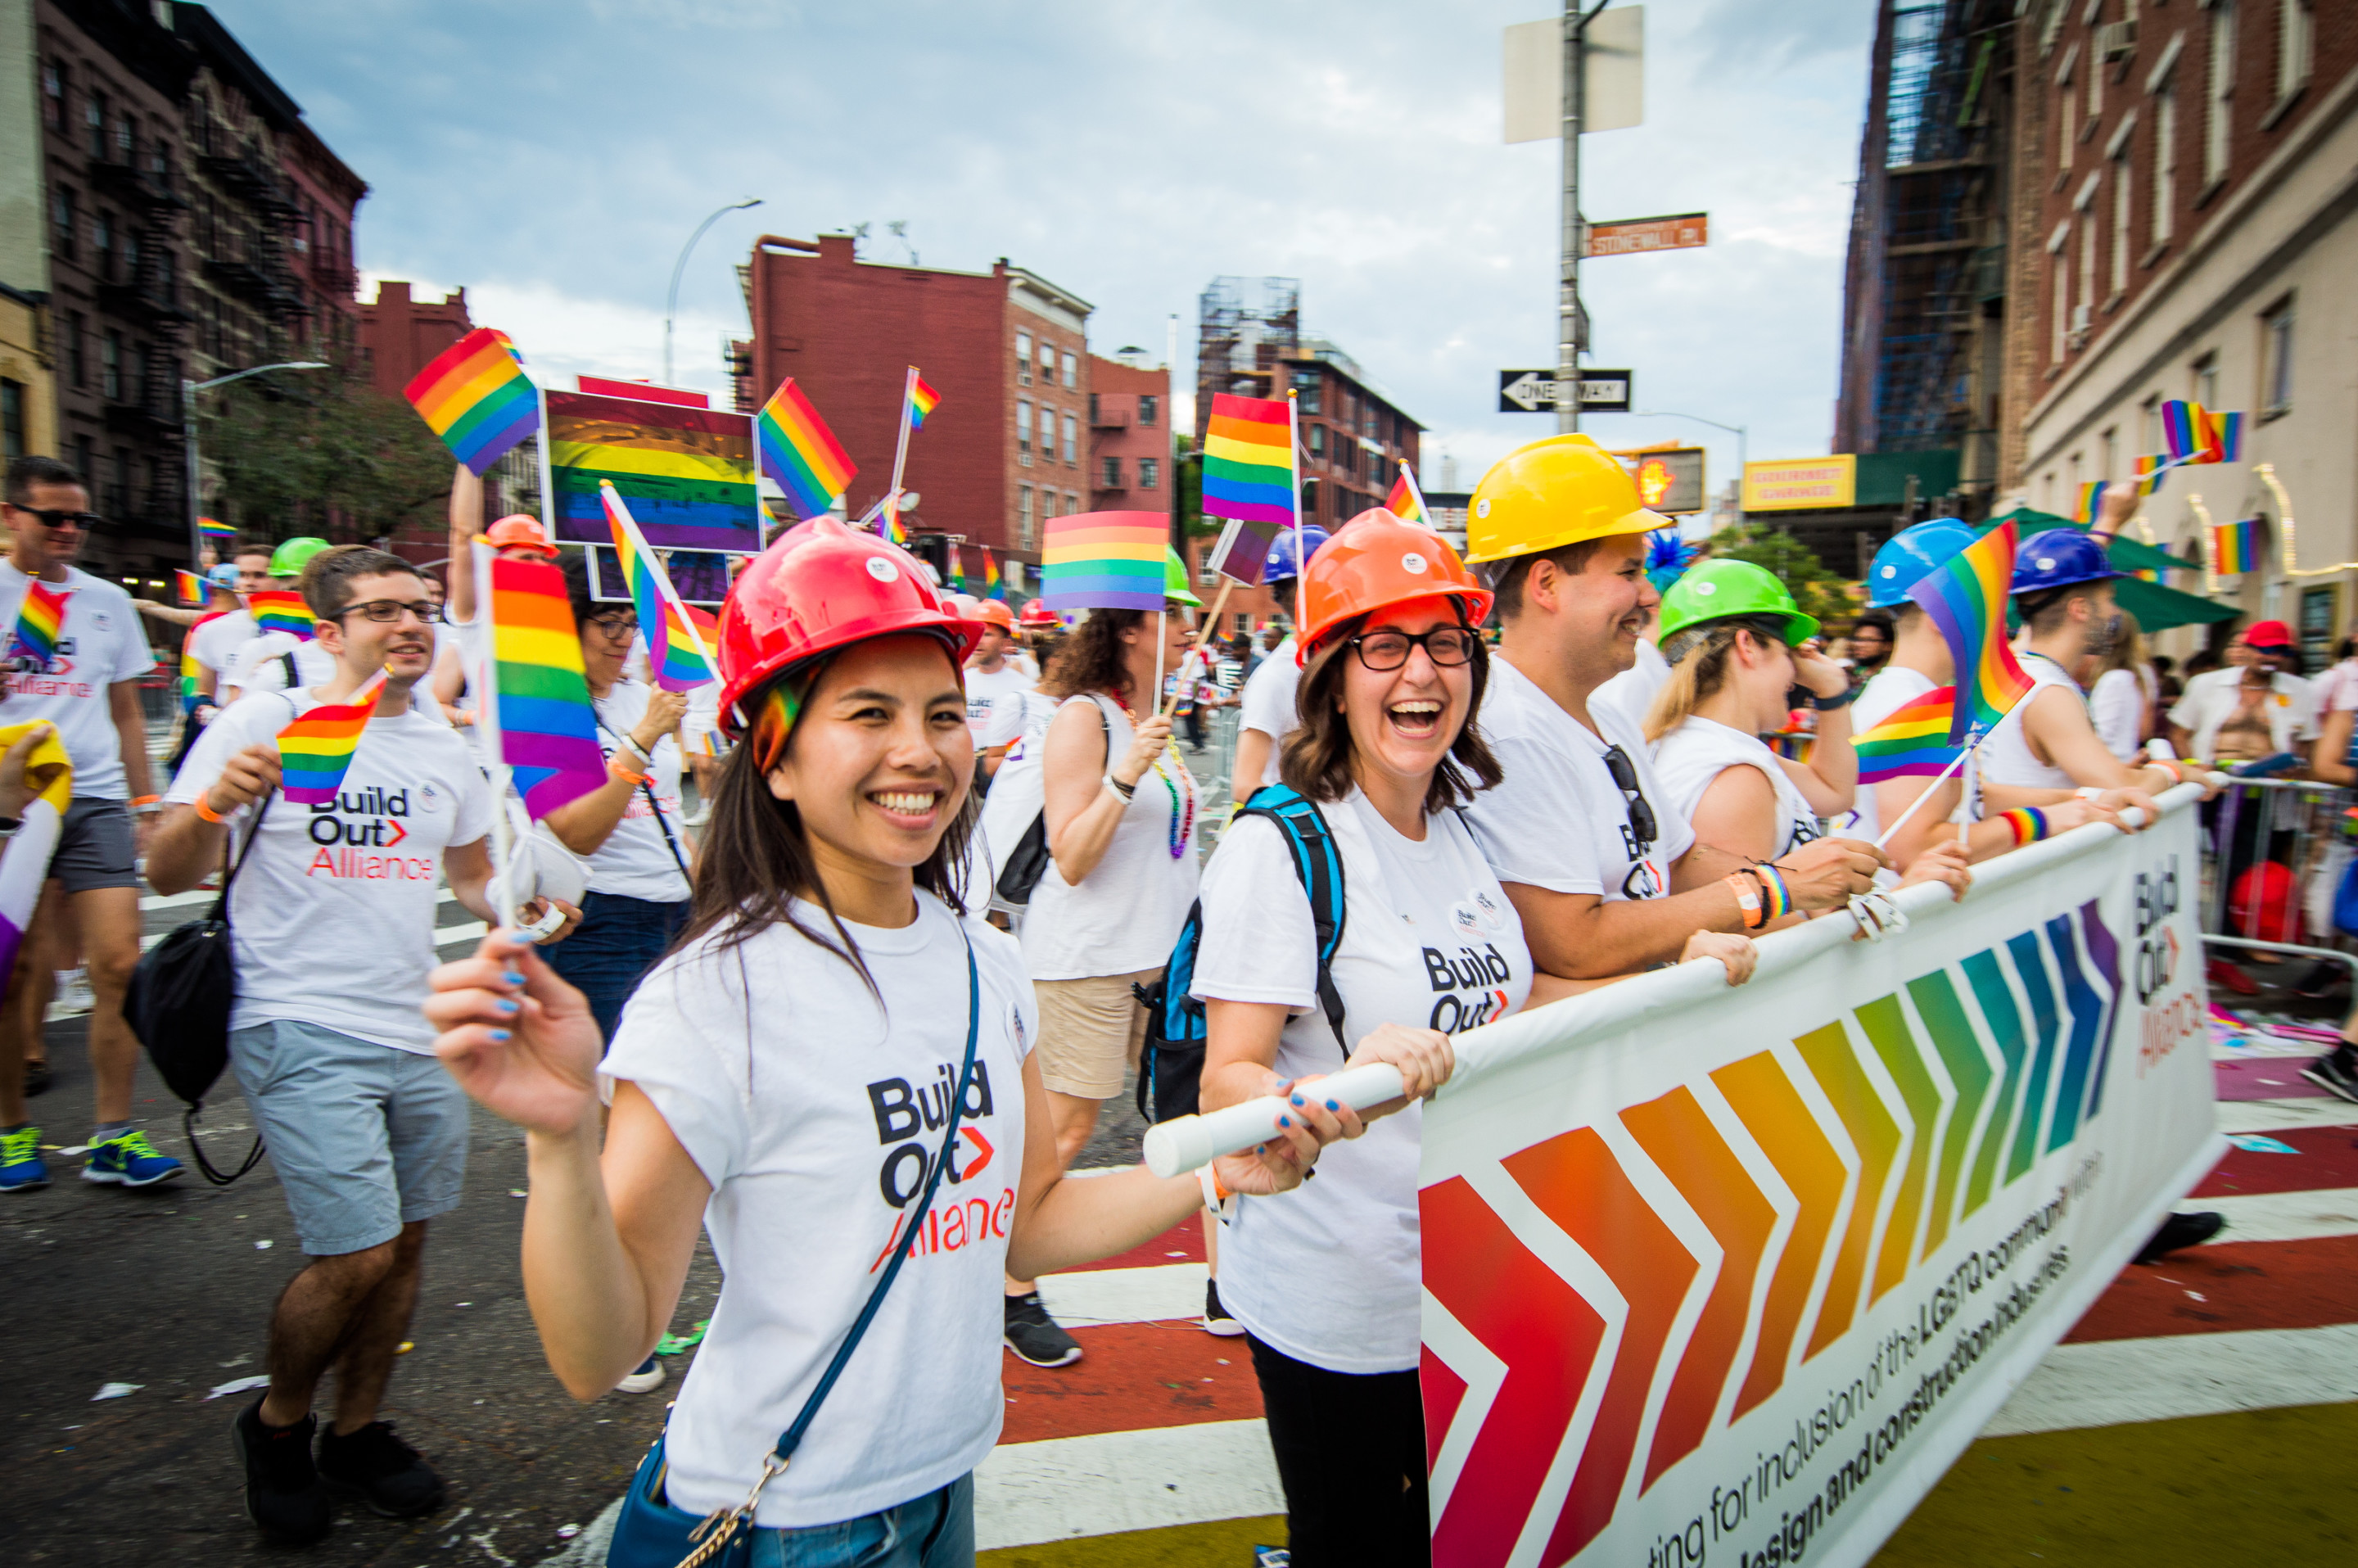 Architects marching for LGBTQ+ diversity in the profession